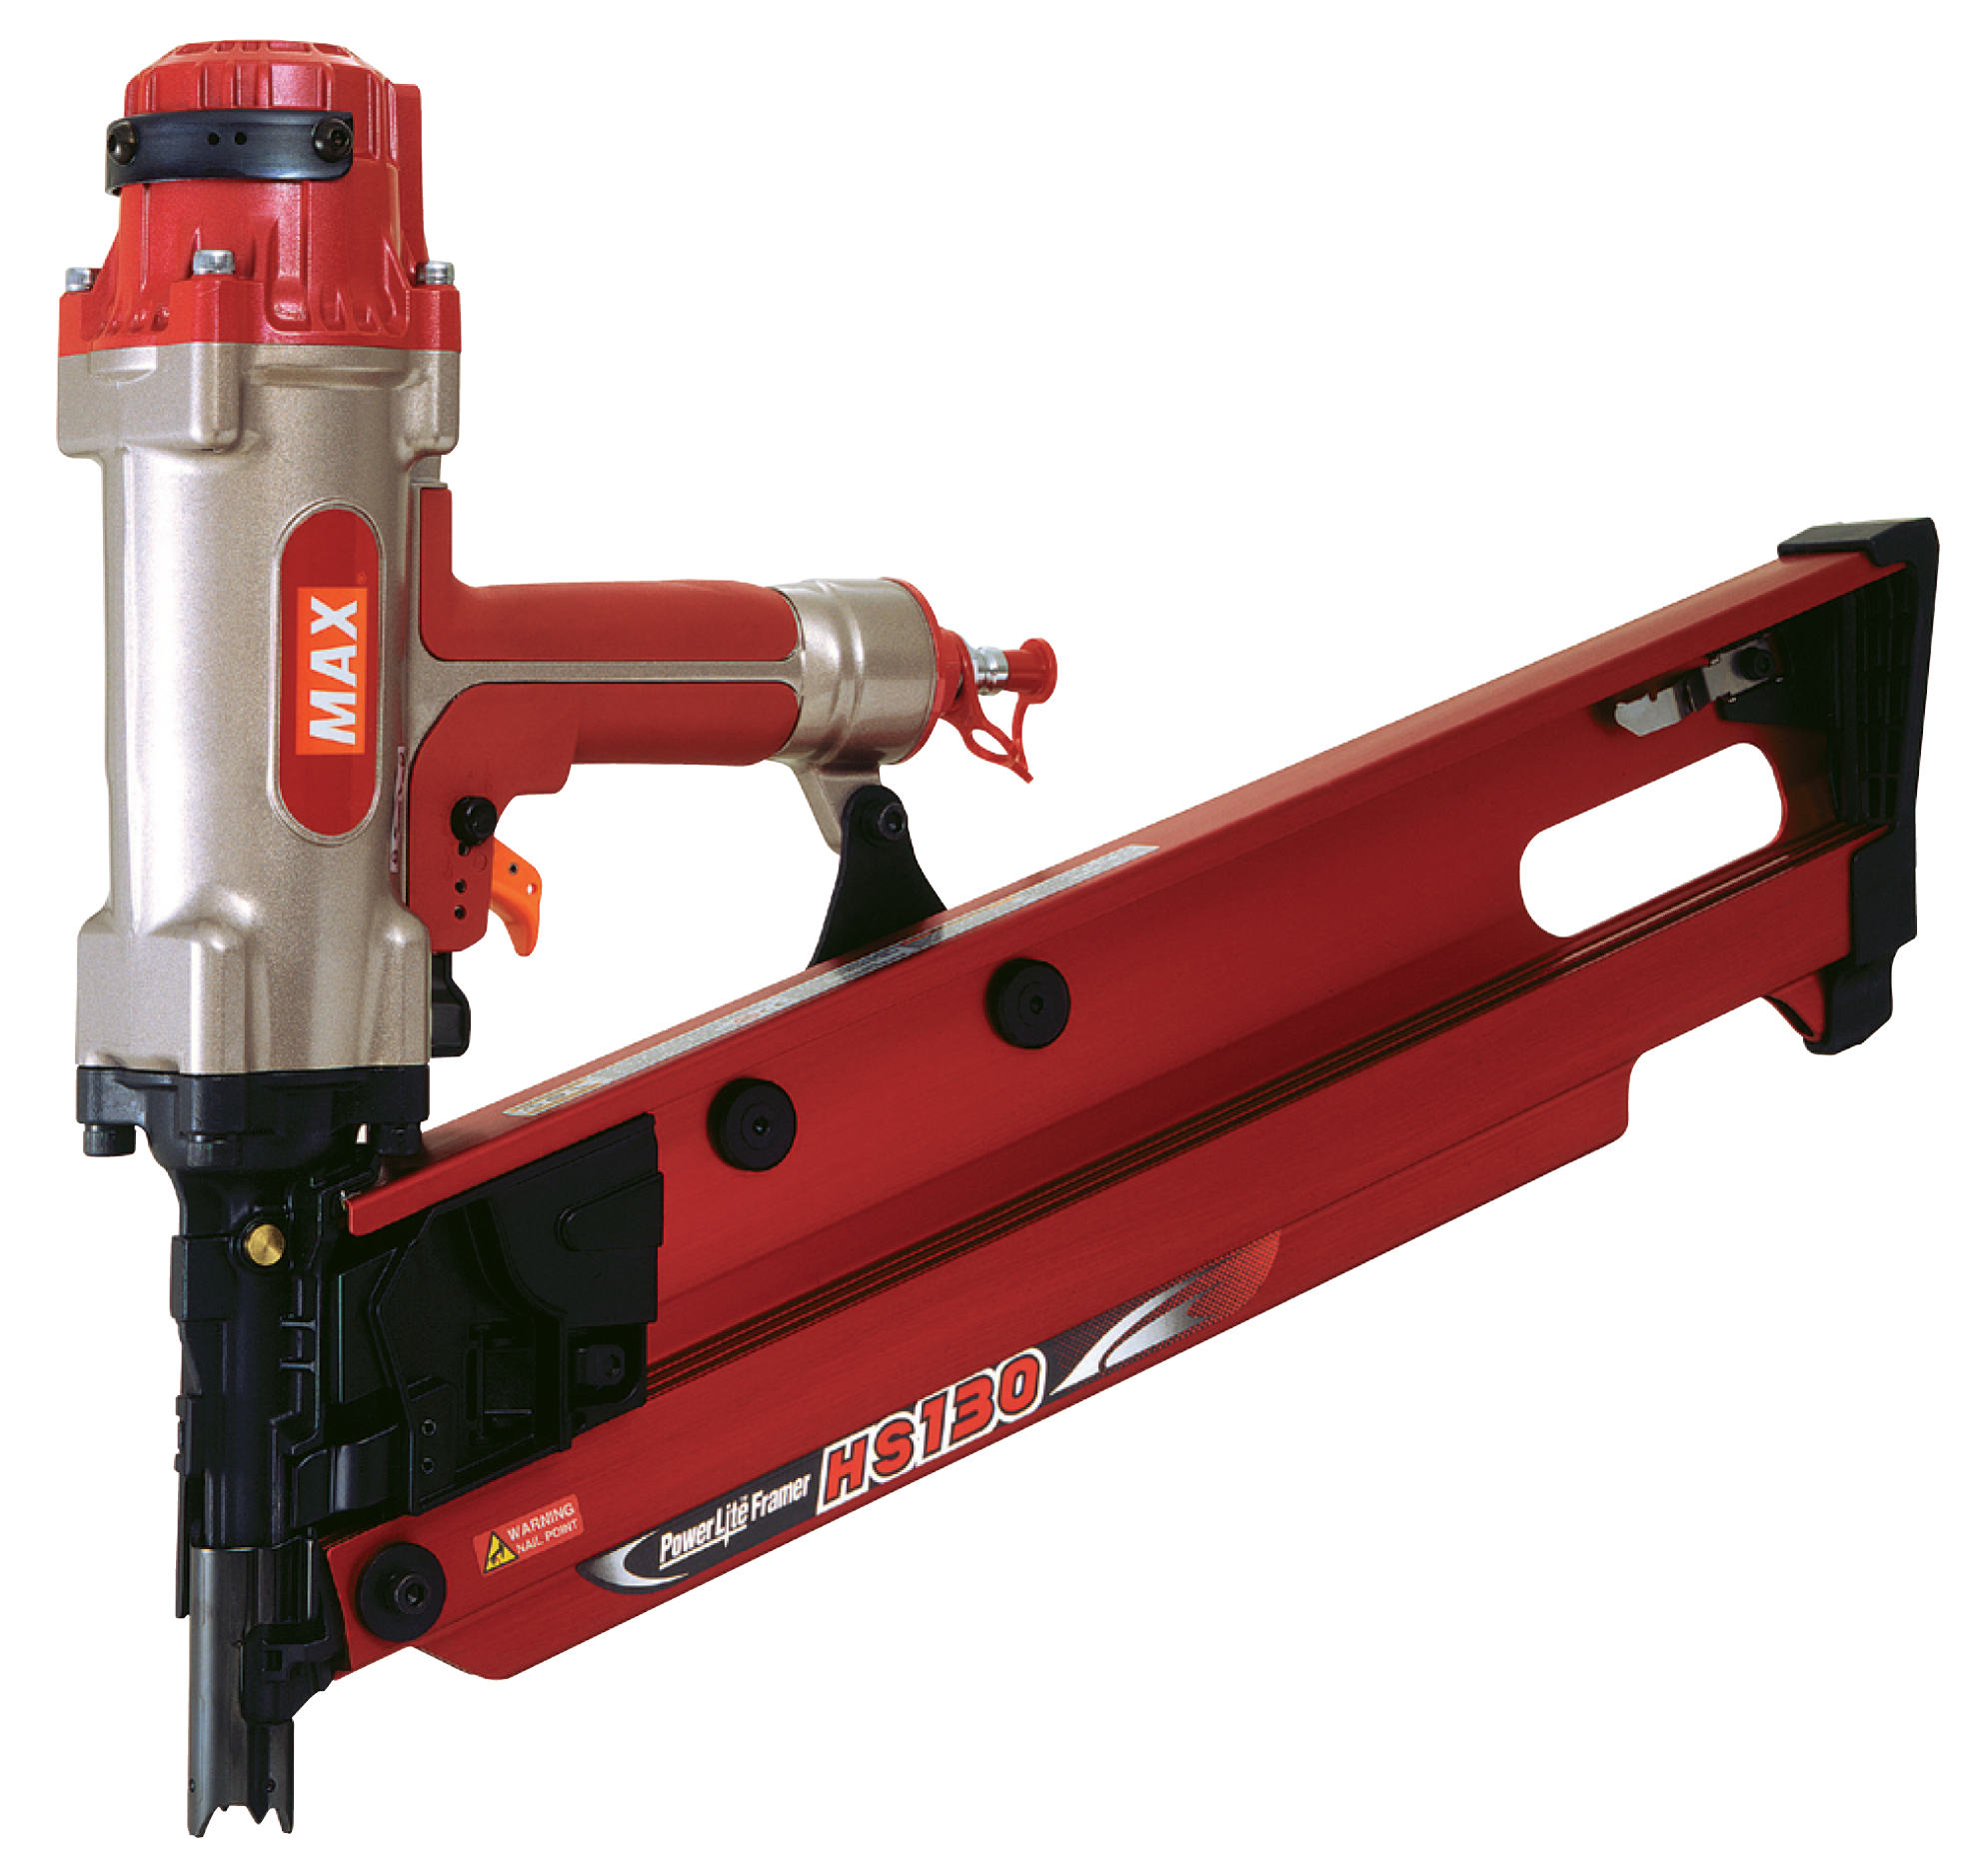 HS130 - MAX USA CORP. - The world's professional tool manufacturer